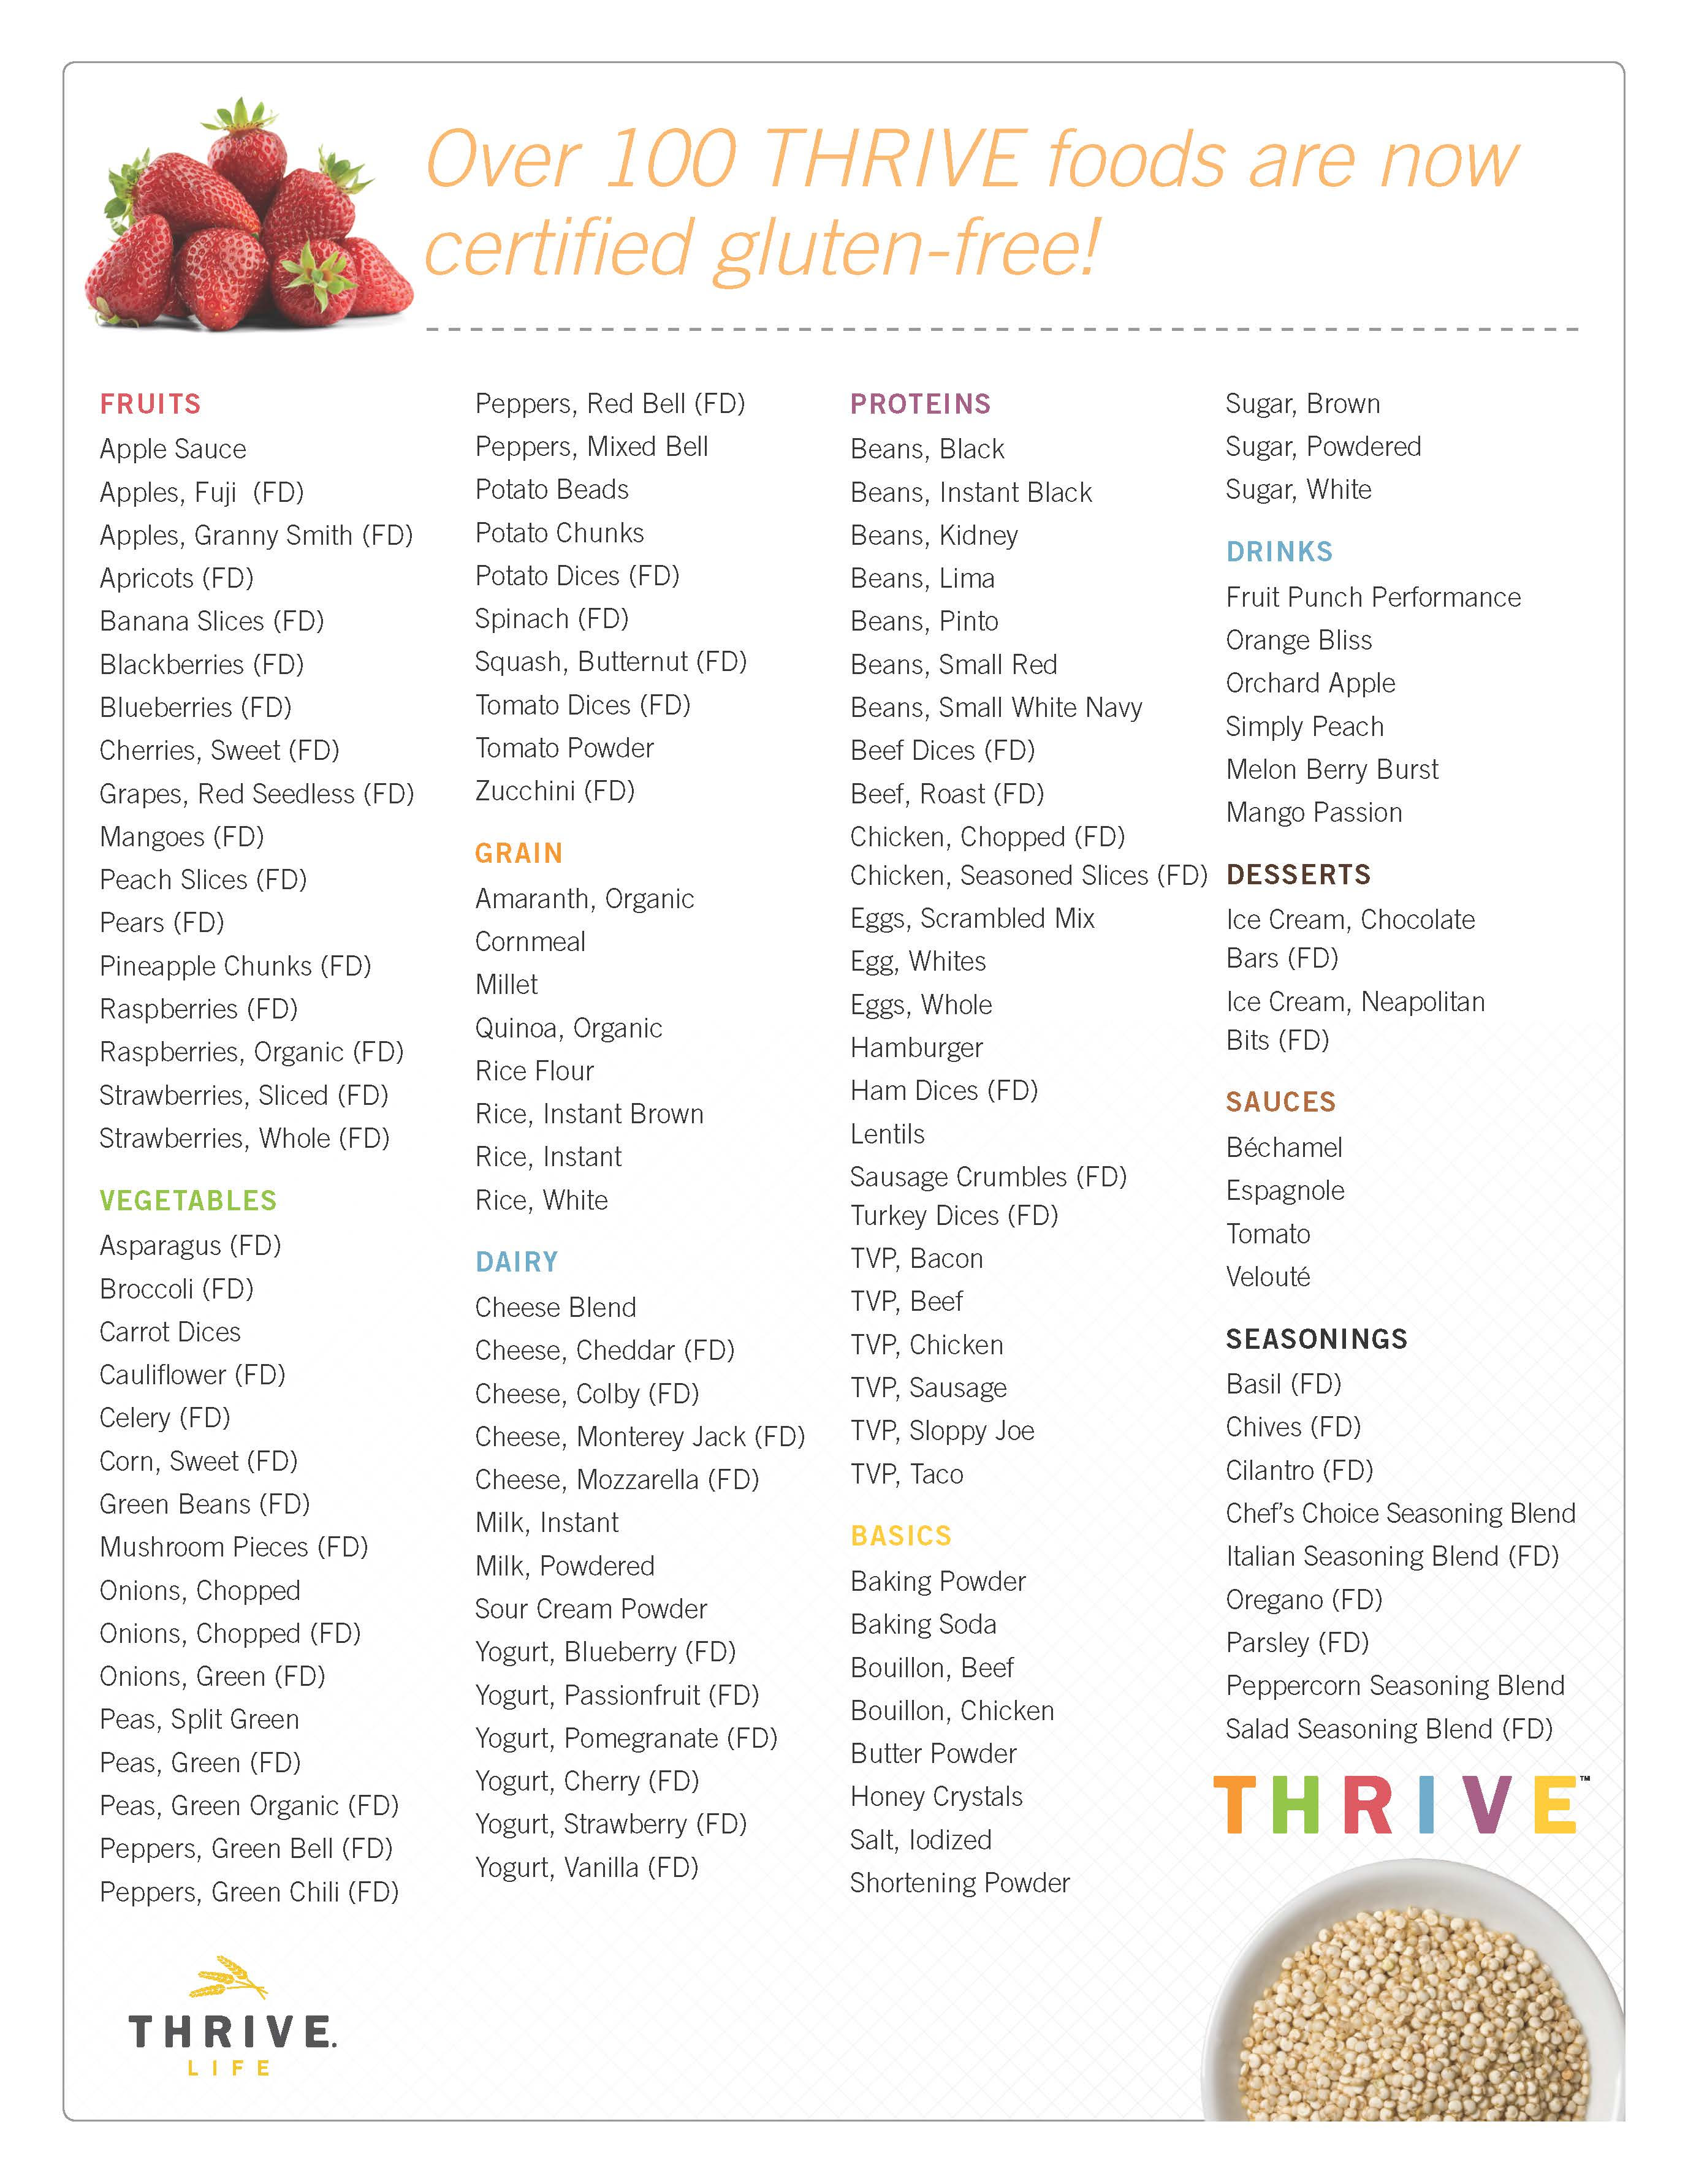 98 Certified Gluten Free Foods-Save $$ on Thrive Freeze ...